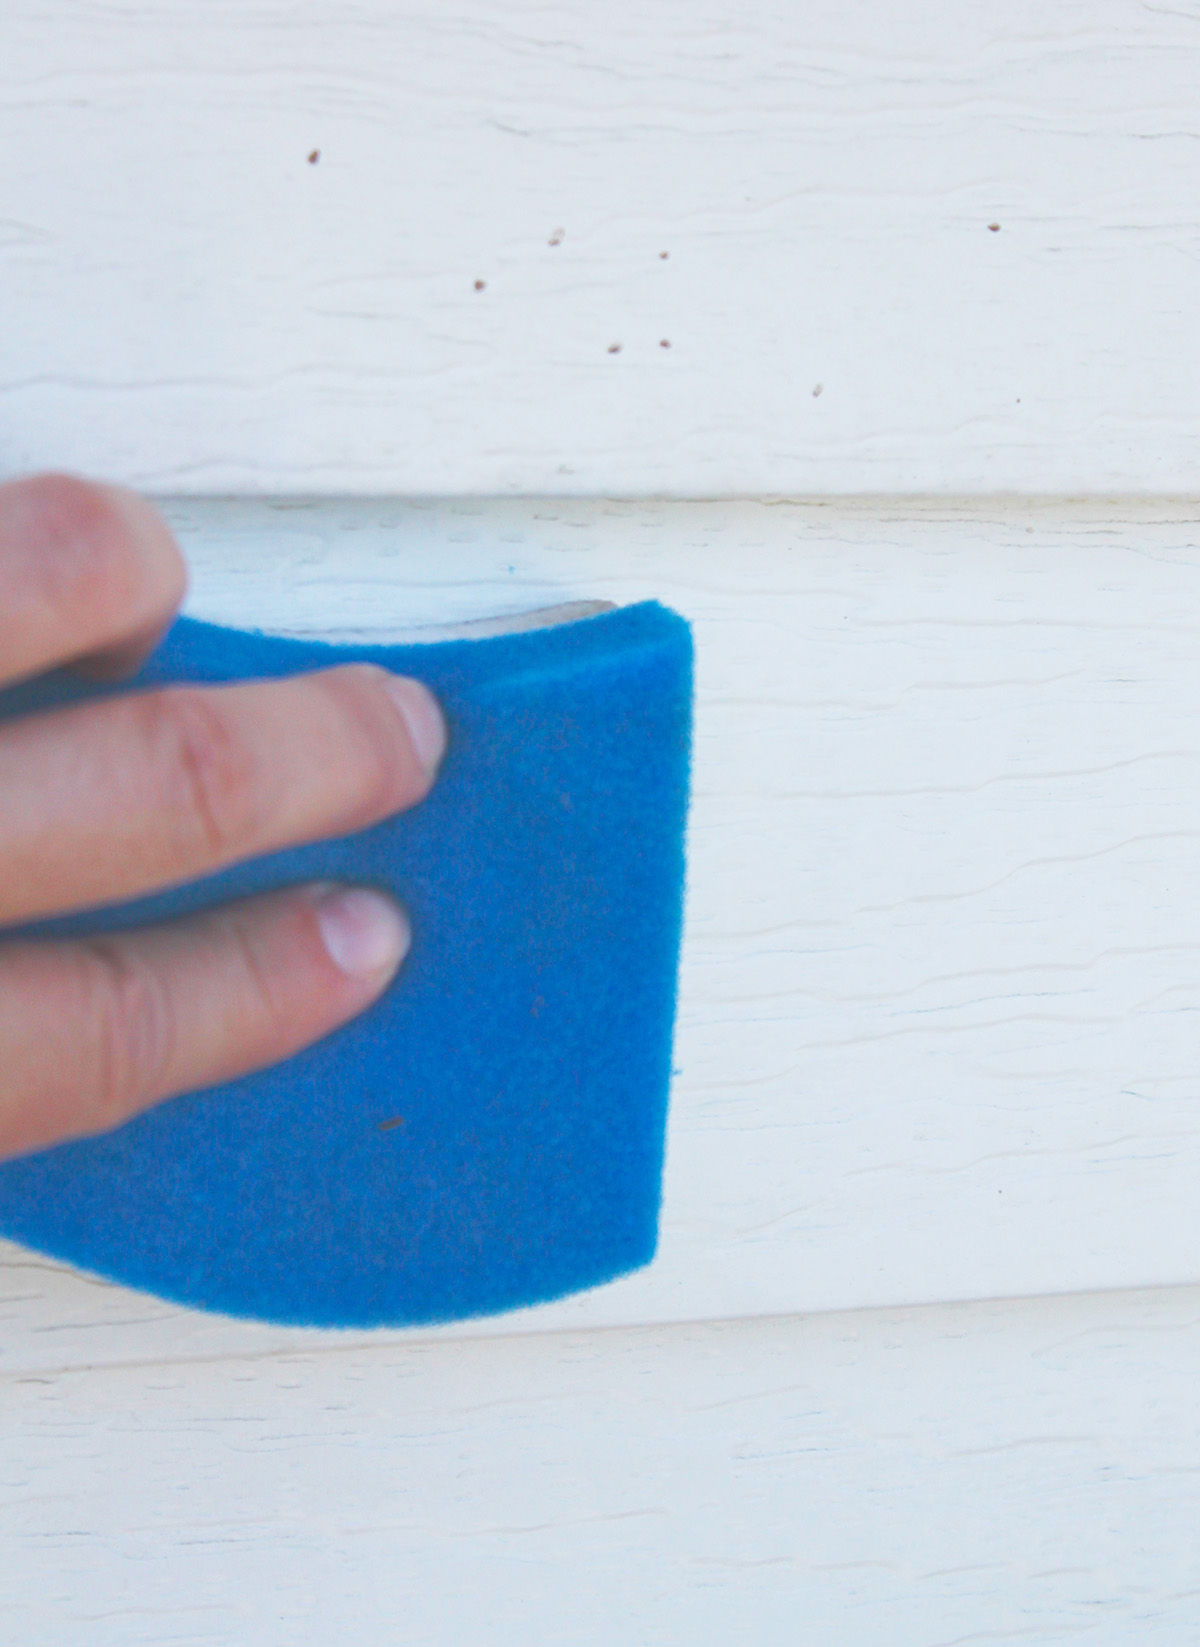 5 - Siding - during